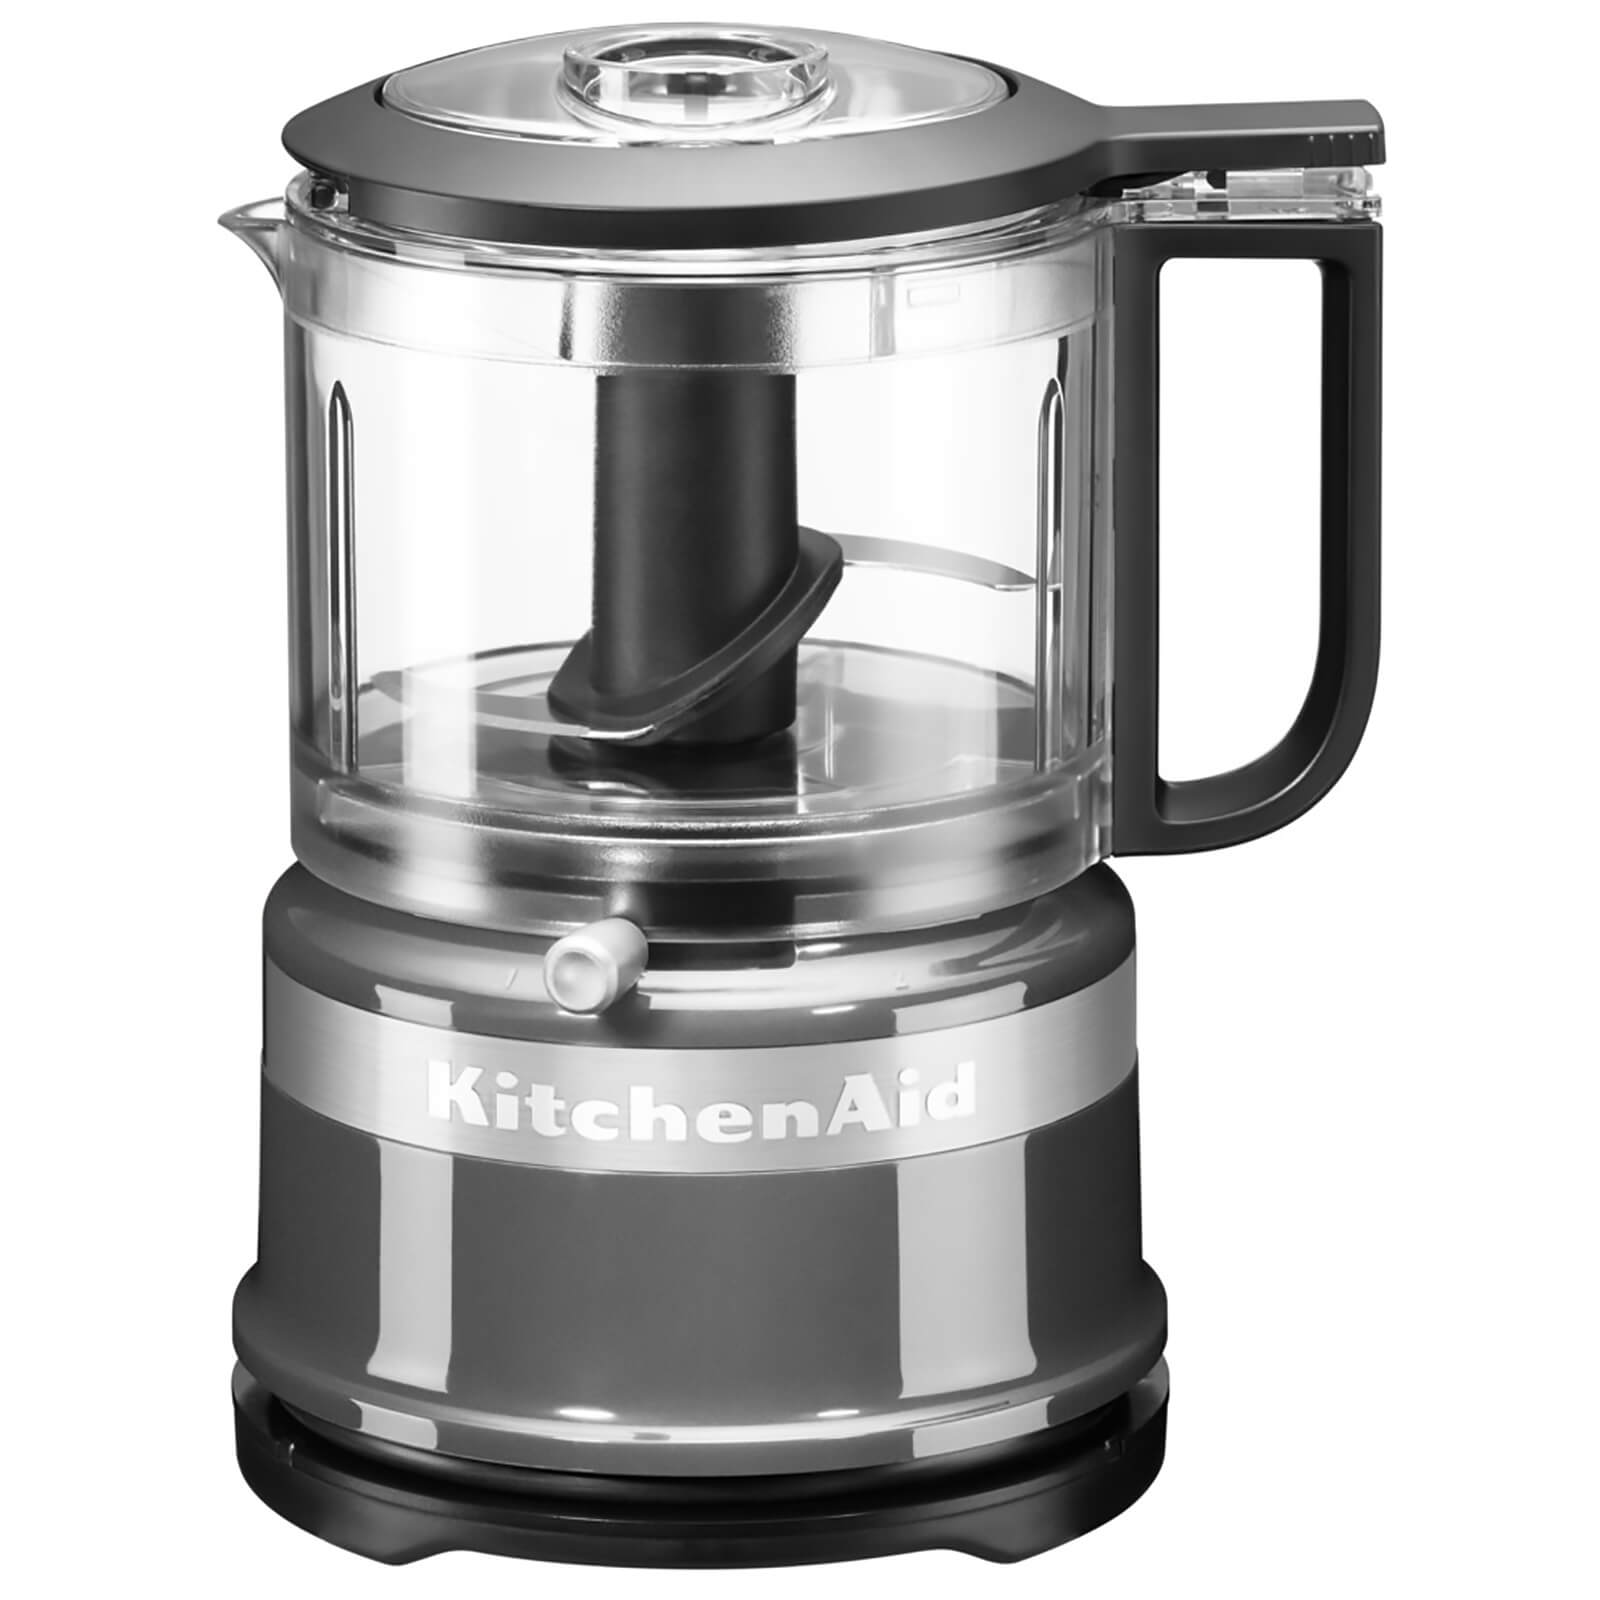 KitchenAid 5KFC3516BCU Mini Food Processor - Contour Silver